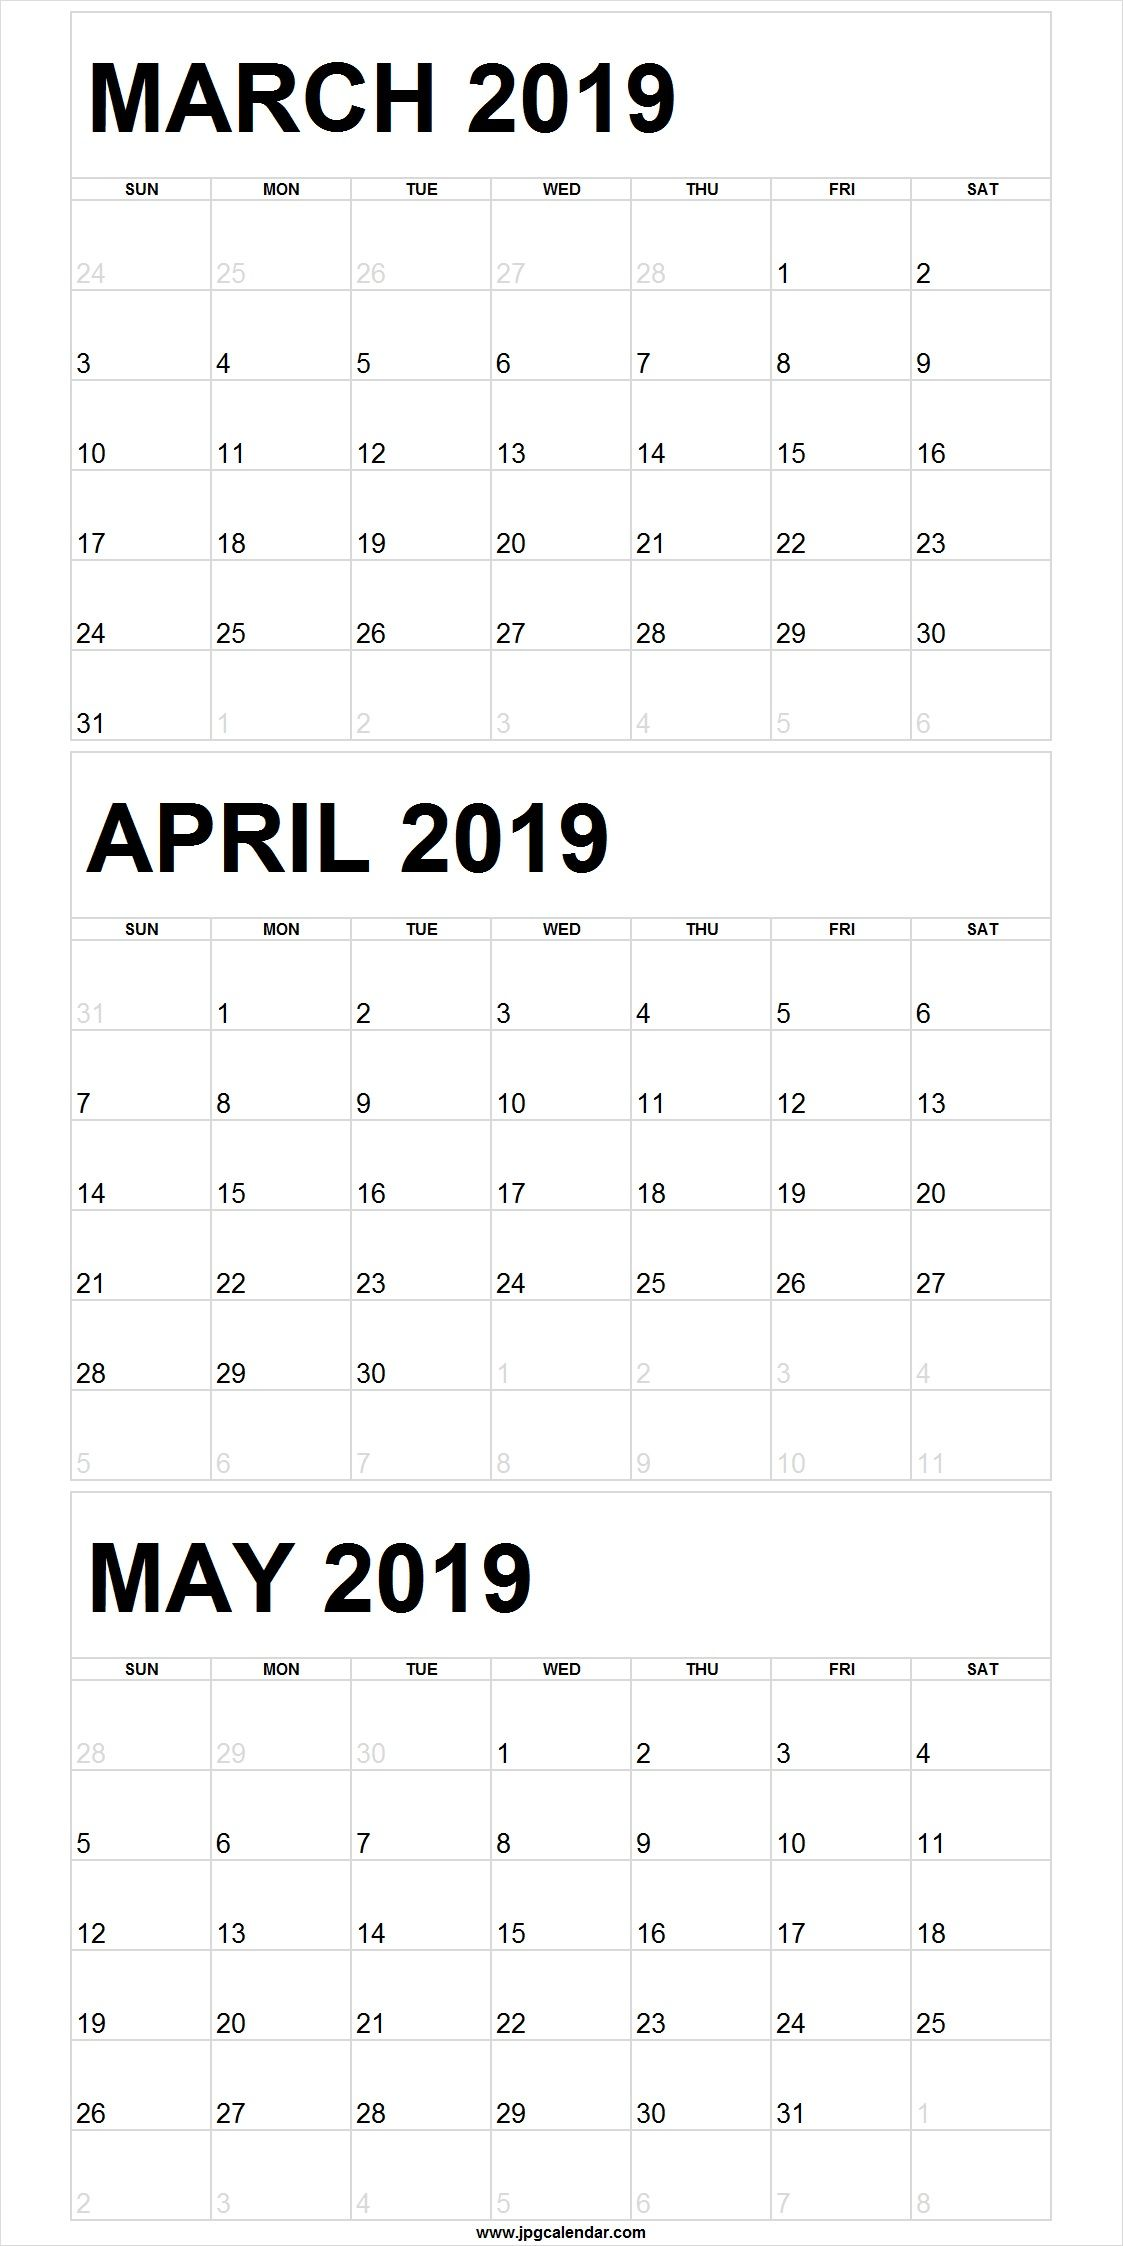 Blank March To May 2019 Calendar Printable March April May 2019calendars 3 Month Calendar Calendar Printables Free Calendar Template